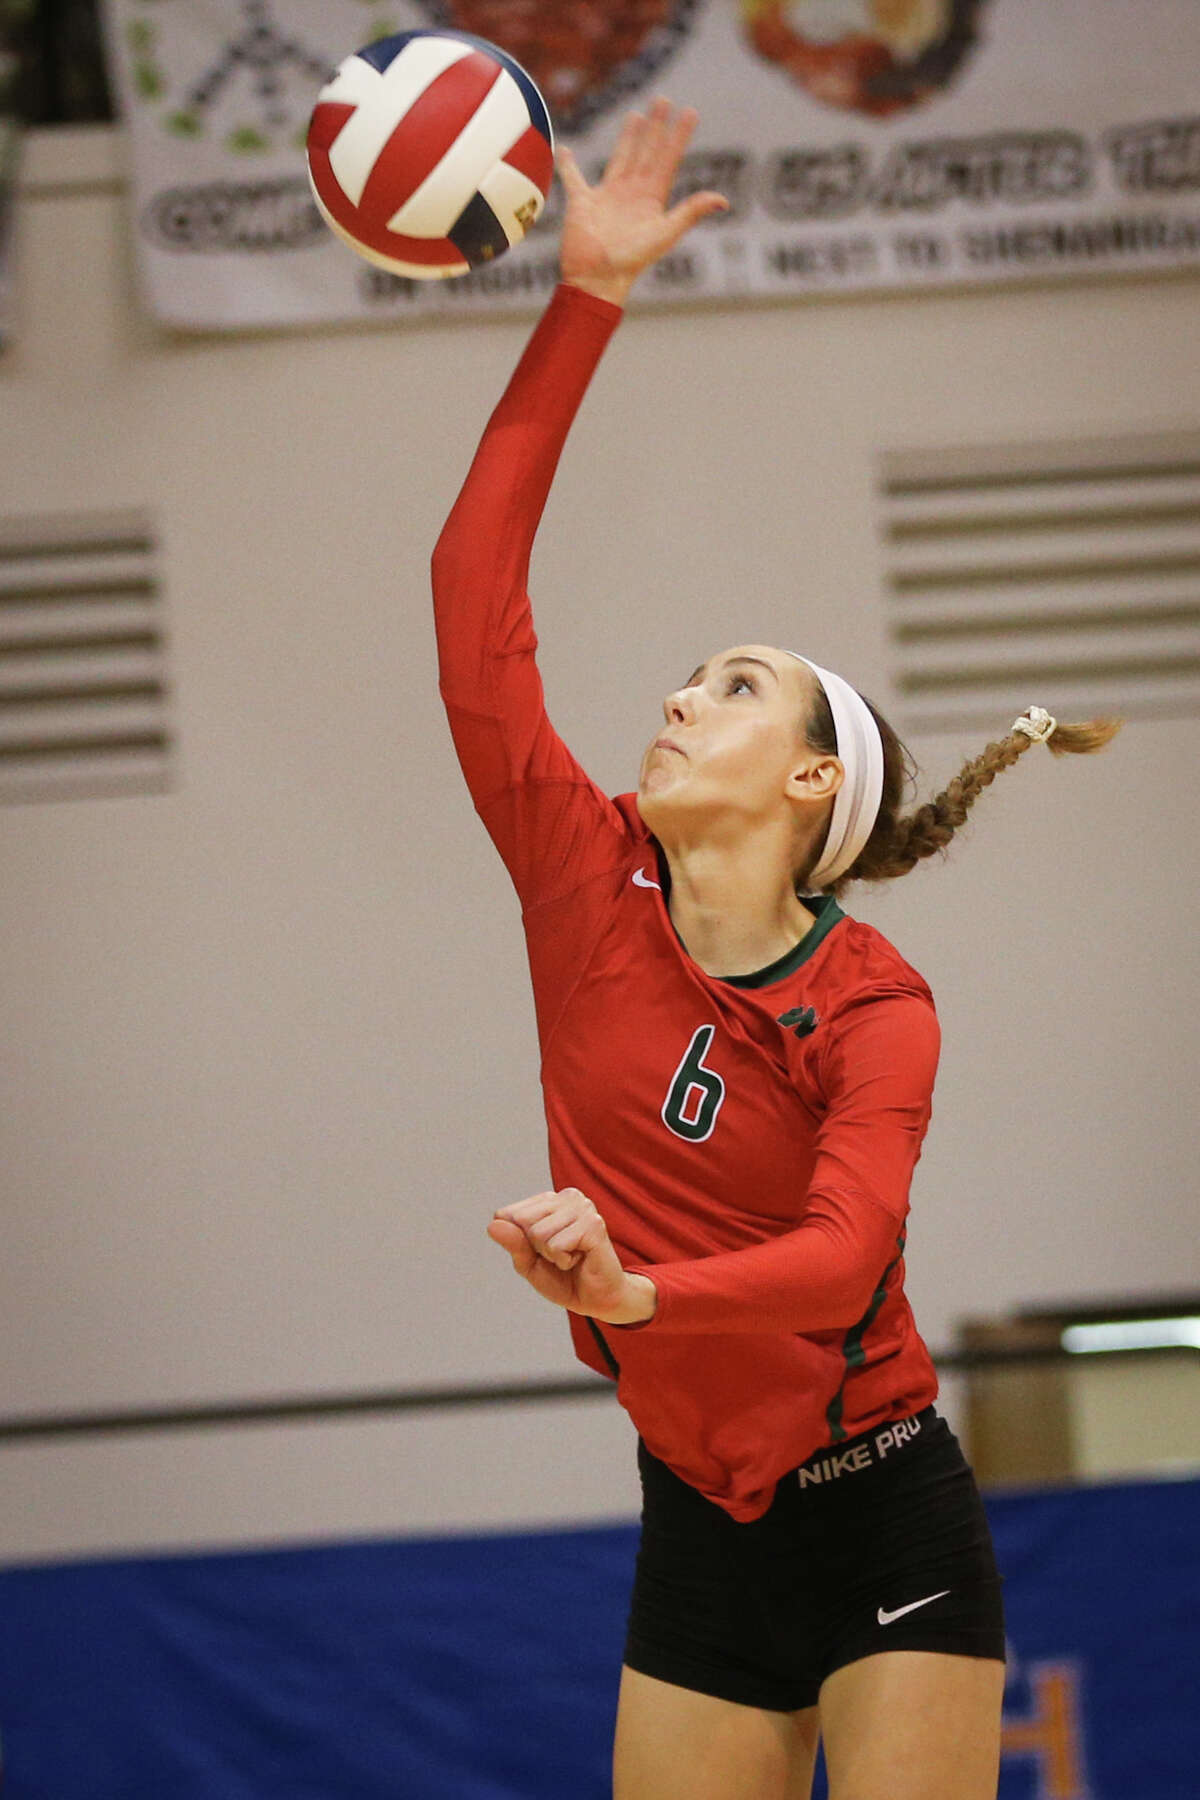 The Woodlands' Courtney Heiser (6) hits the ball during the varsity volleyball game against Oak Ridge on Saturday, Nov. 12, 2016, at Johnson Coliseum in Huntsville, Texas. (Michael Minasi / Chronicle)